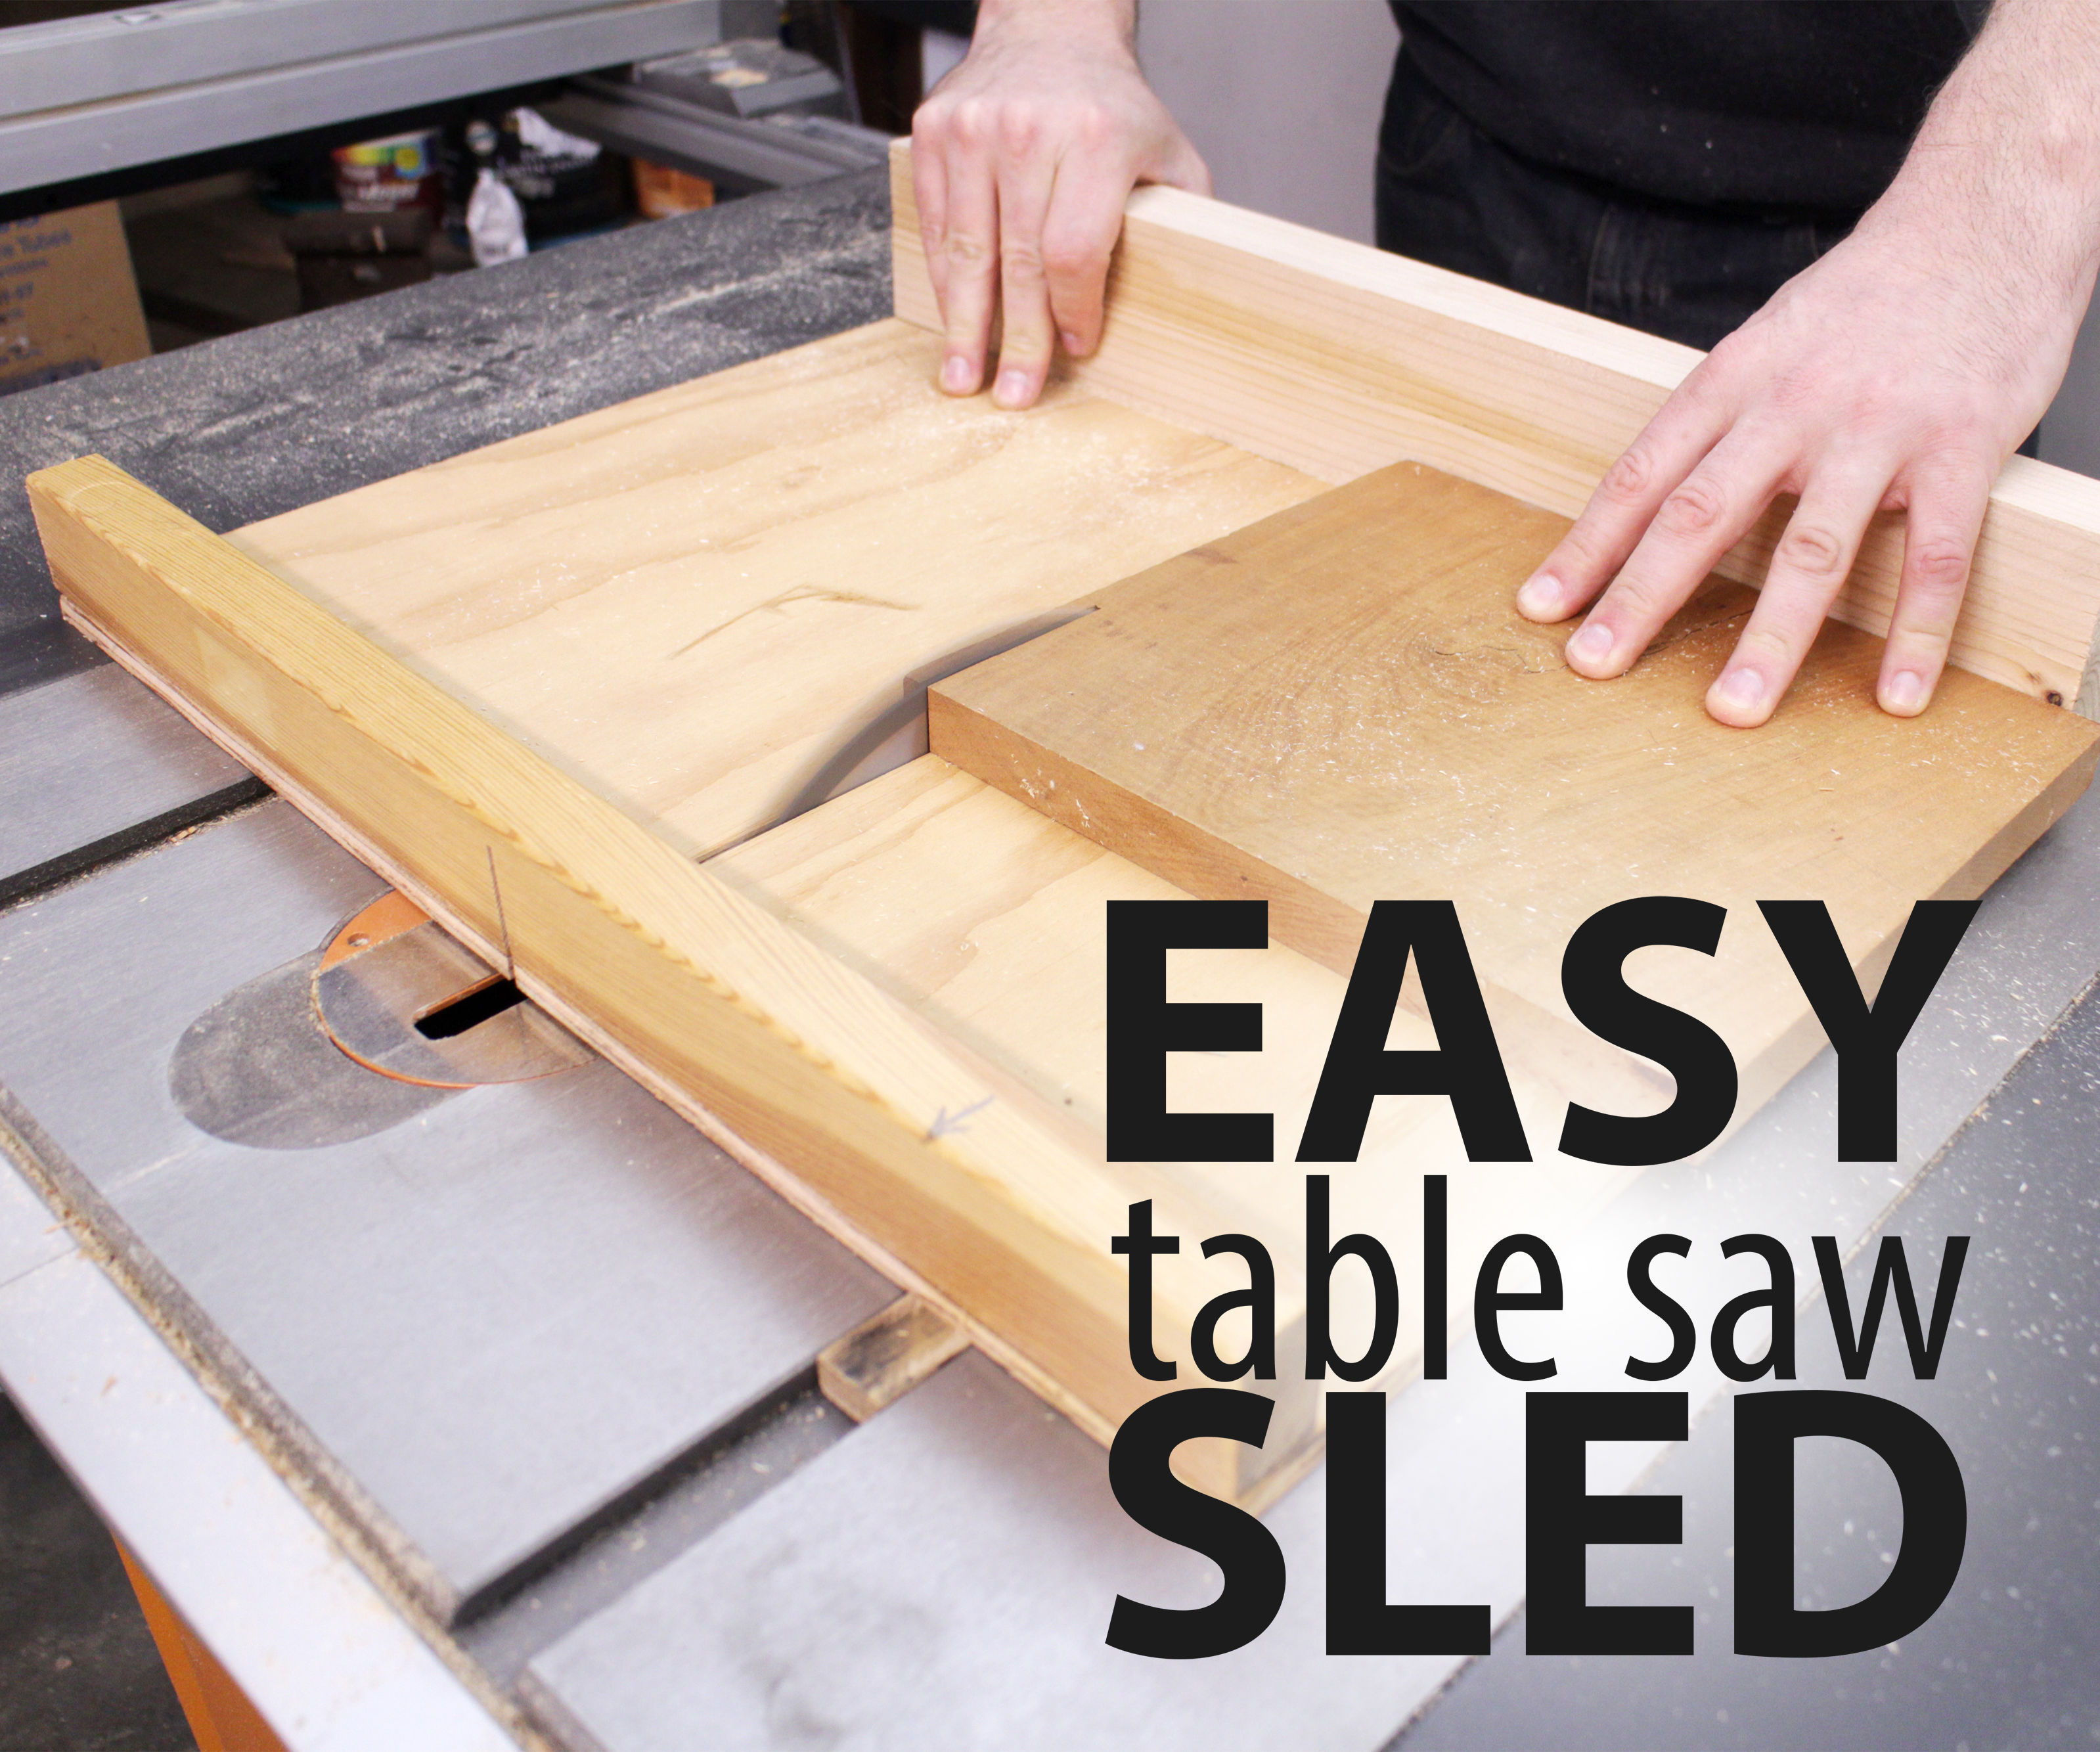 easy table saw sled: 16 steps (with pictures)